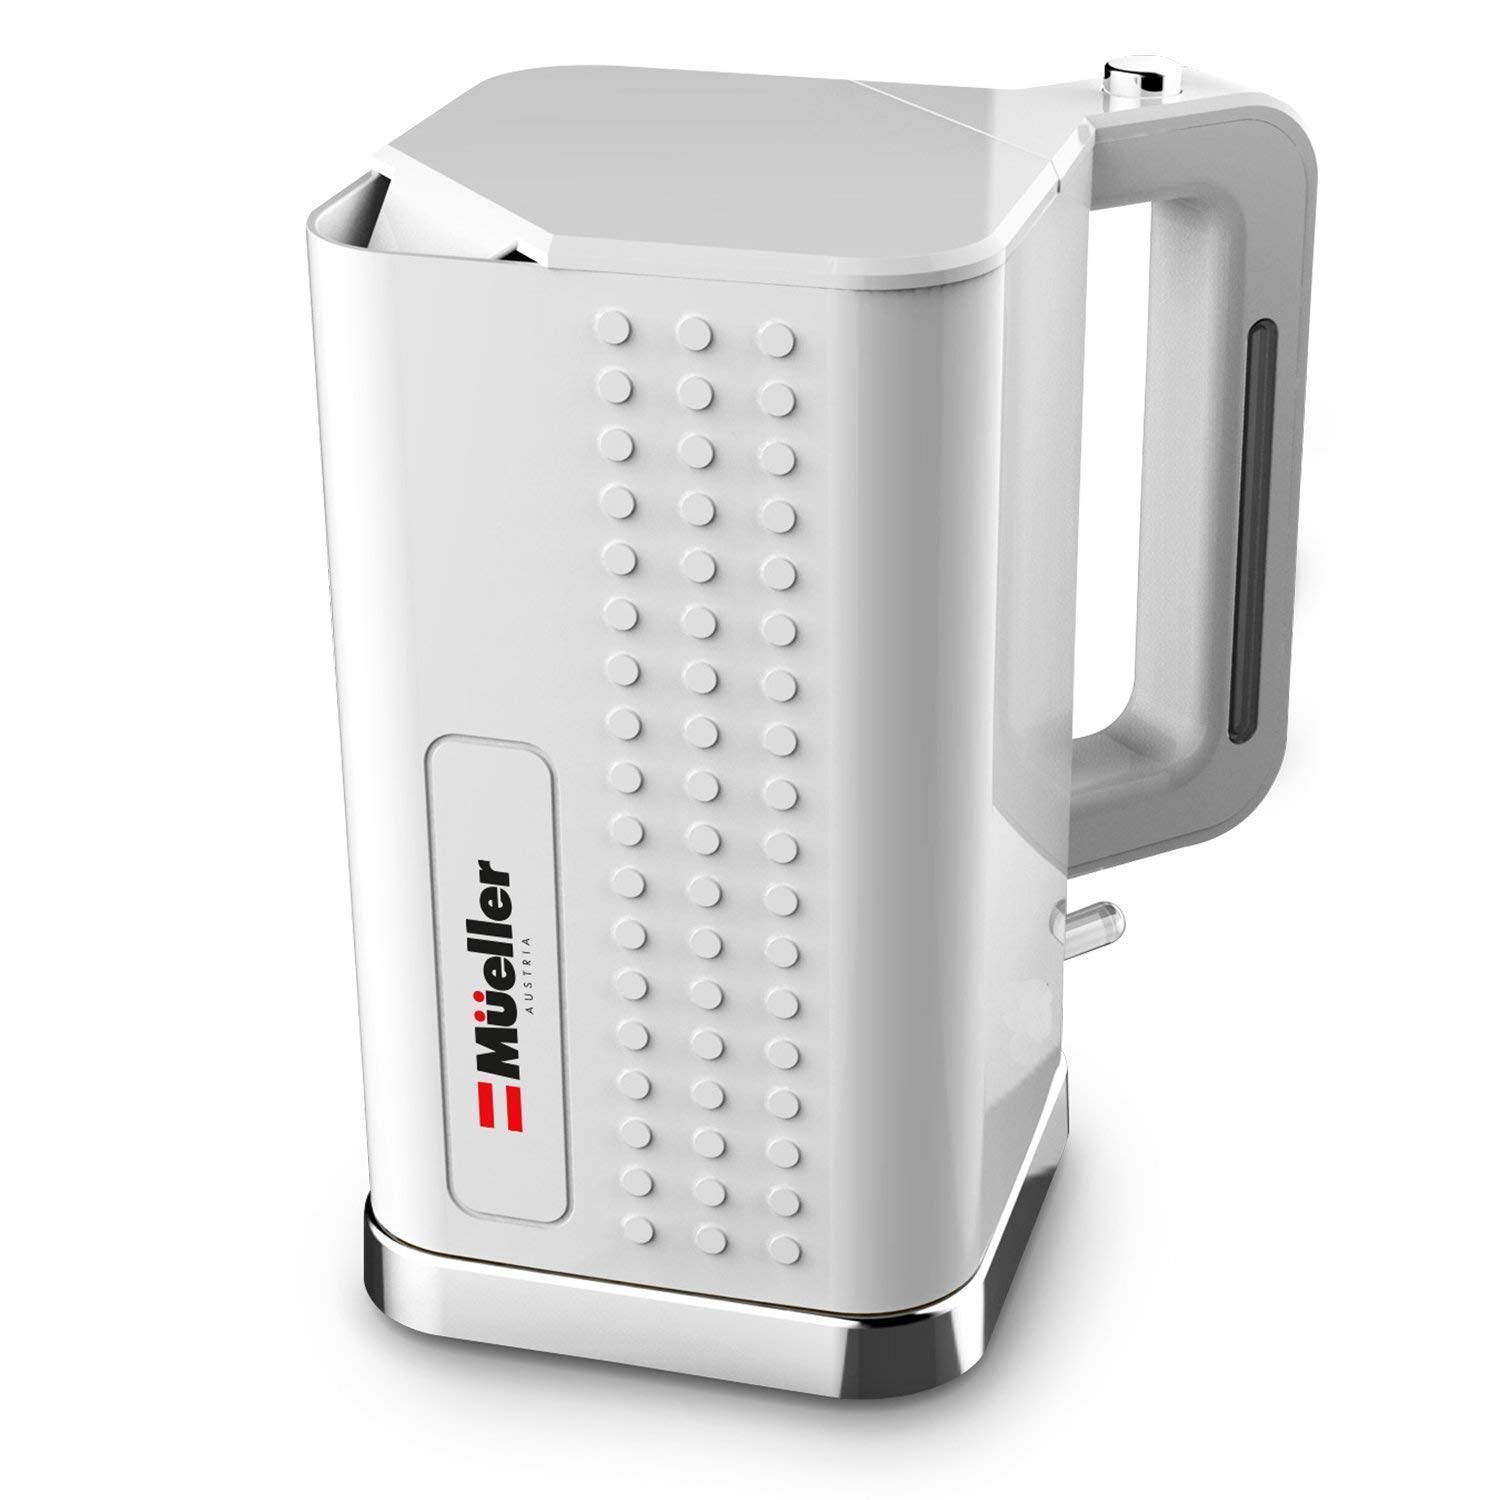 Mueller Austria Electric Kettle Water Heater ExacTemp Modern Powerful 1500W Rapid Technology, Tea Coffee Pot-360 Degree Cordless Swivel Base, BPA-Free, and and Boil-Dry Protection Auto Shut-Off